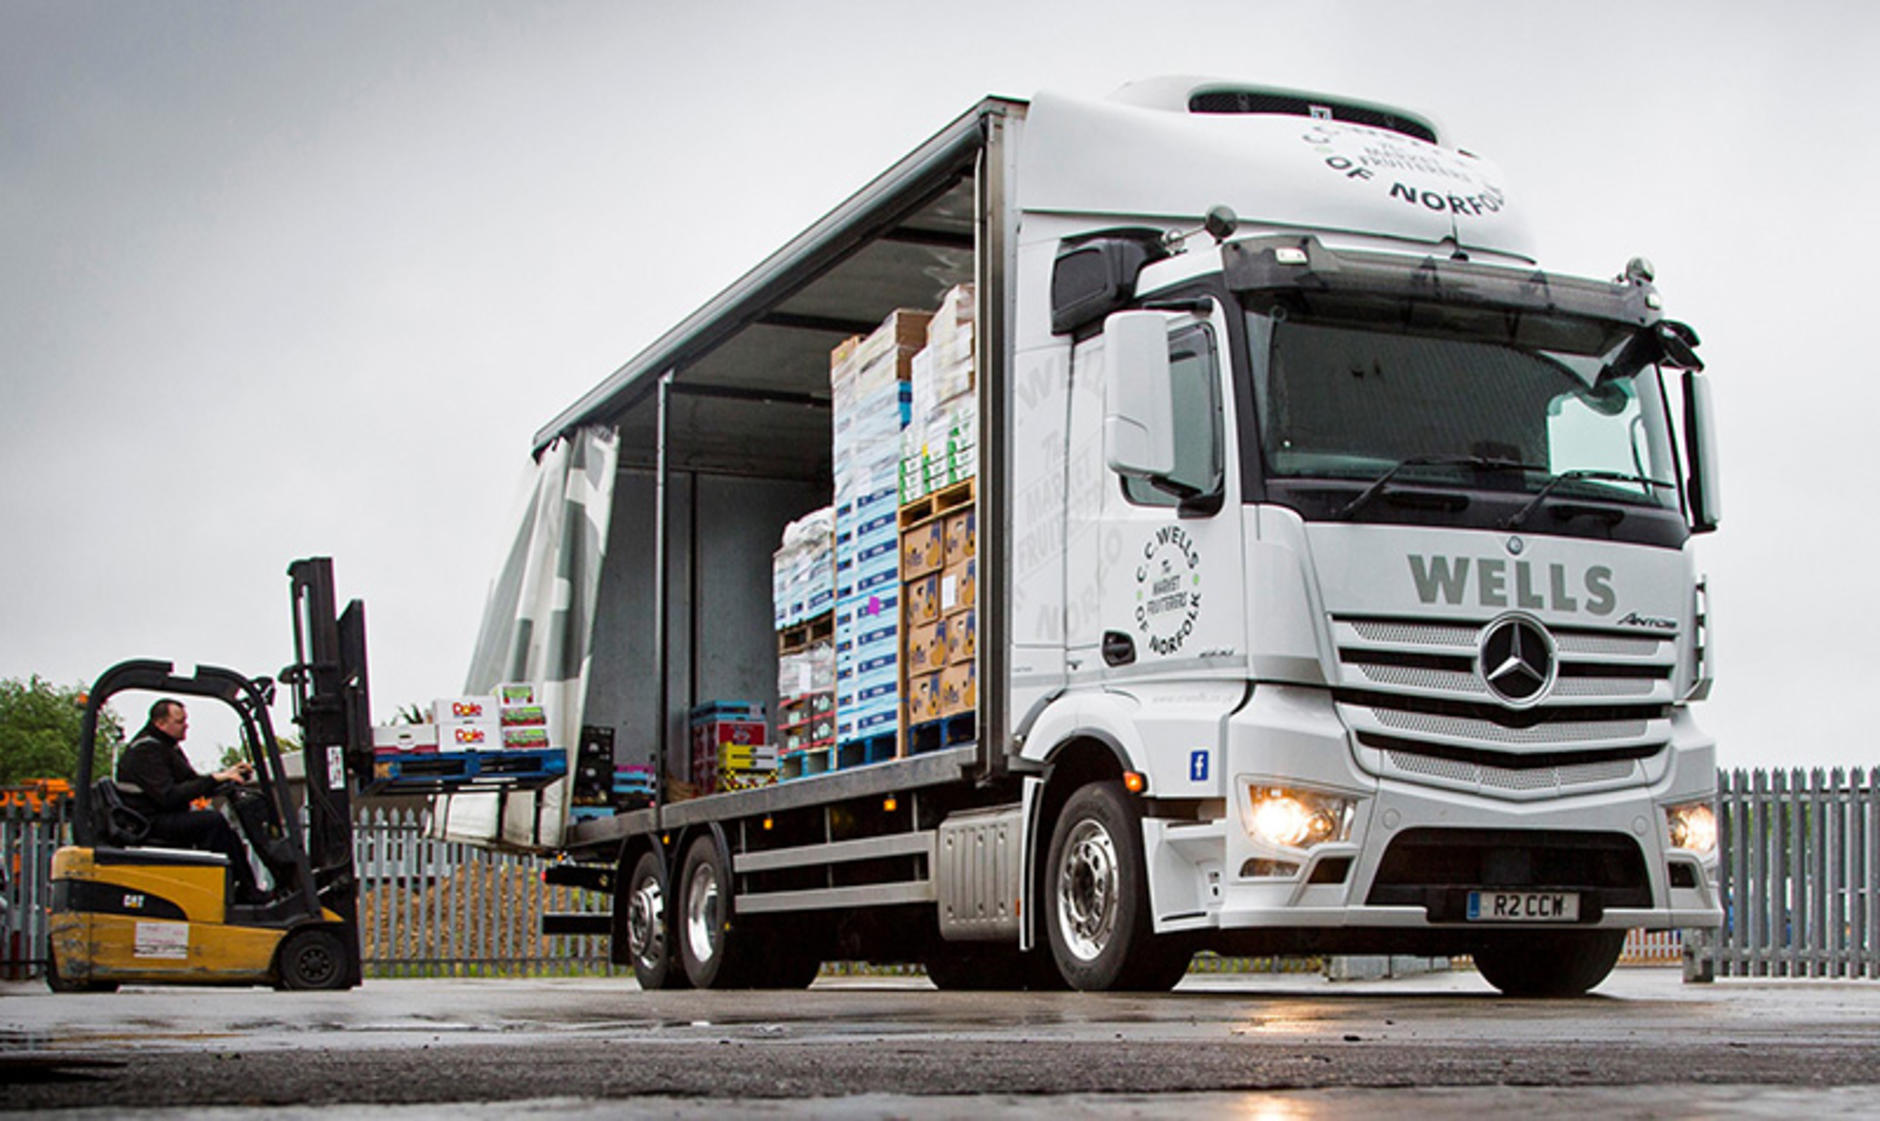 mercedes-benz antos from orwell truck and van for cc wells